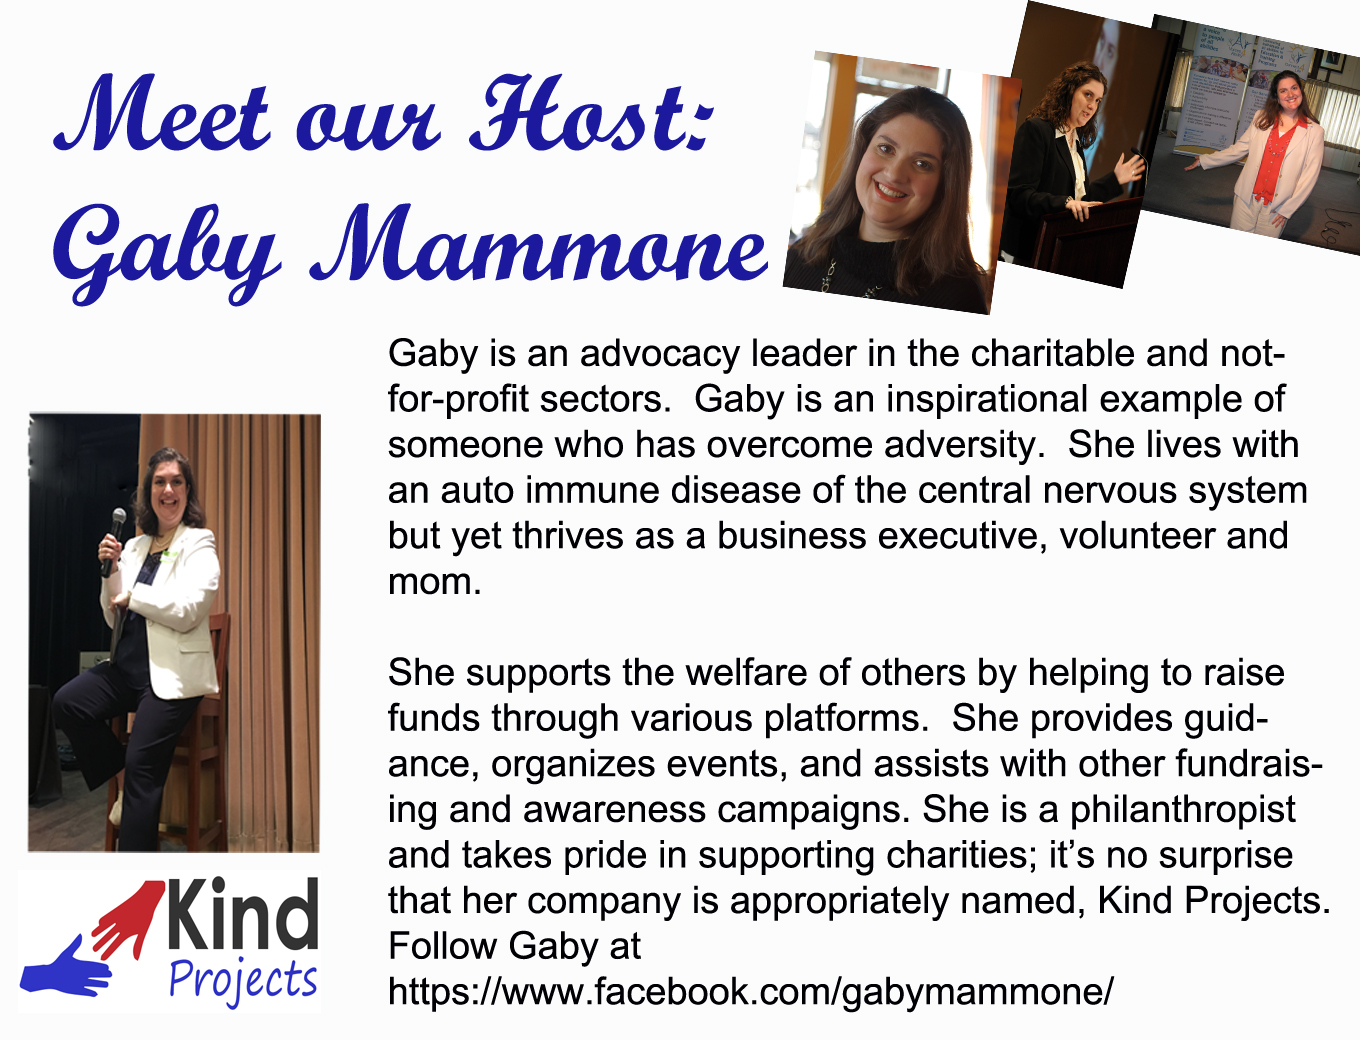 Gaby is an advocacy leader in the charitable and not-for-profit sectors.  Gaby is an inspirational example of someone who has overcome adversity.  She lives with an auto immune disease of the central nervous system but yet thrives as a business executive, volunteer and mom.	She supports the welfare of others by helping to raise funds through various platforms.  She provides guidance, organizes events, and assists with other fundraising and awareness campaigns. She is a philanthropist and takes pride in supporting charities; it's no surprise that her company is appropriately named, Kind Projects.  Follow Gaby at https://www.facebook.com/gabymammone/